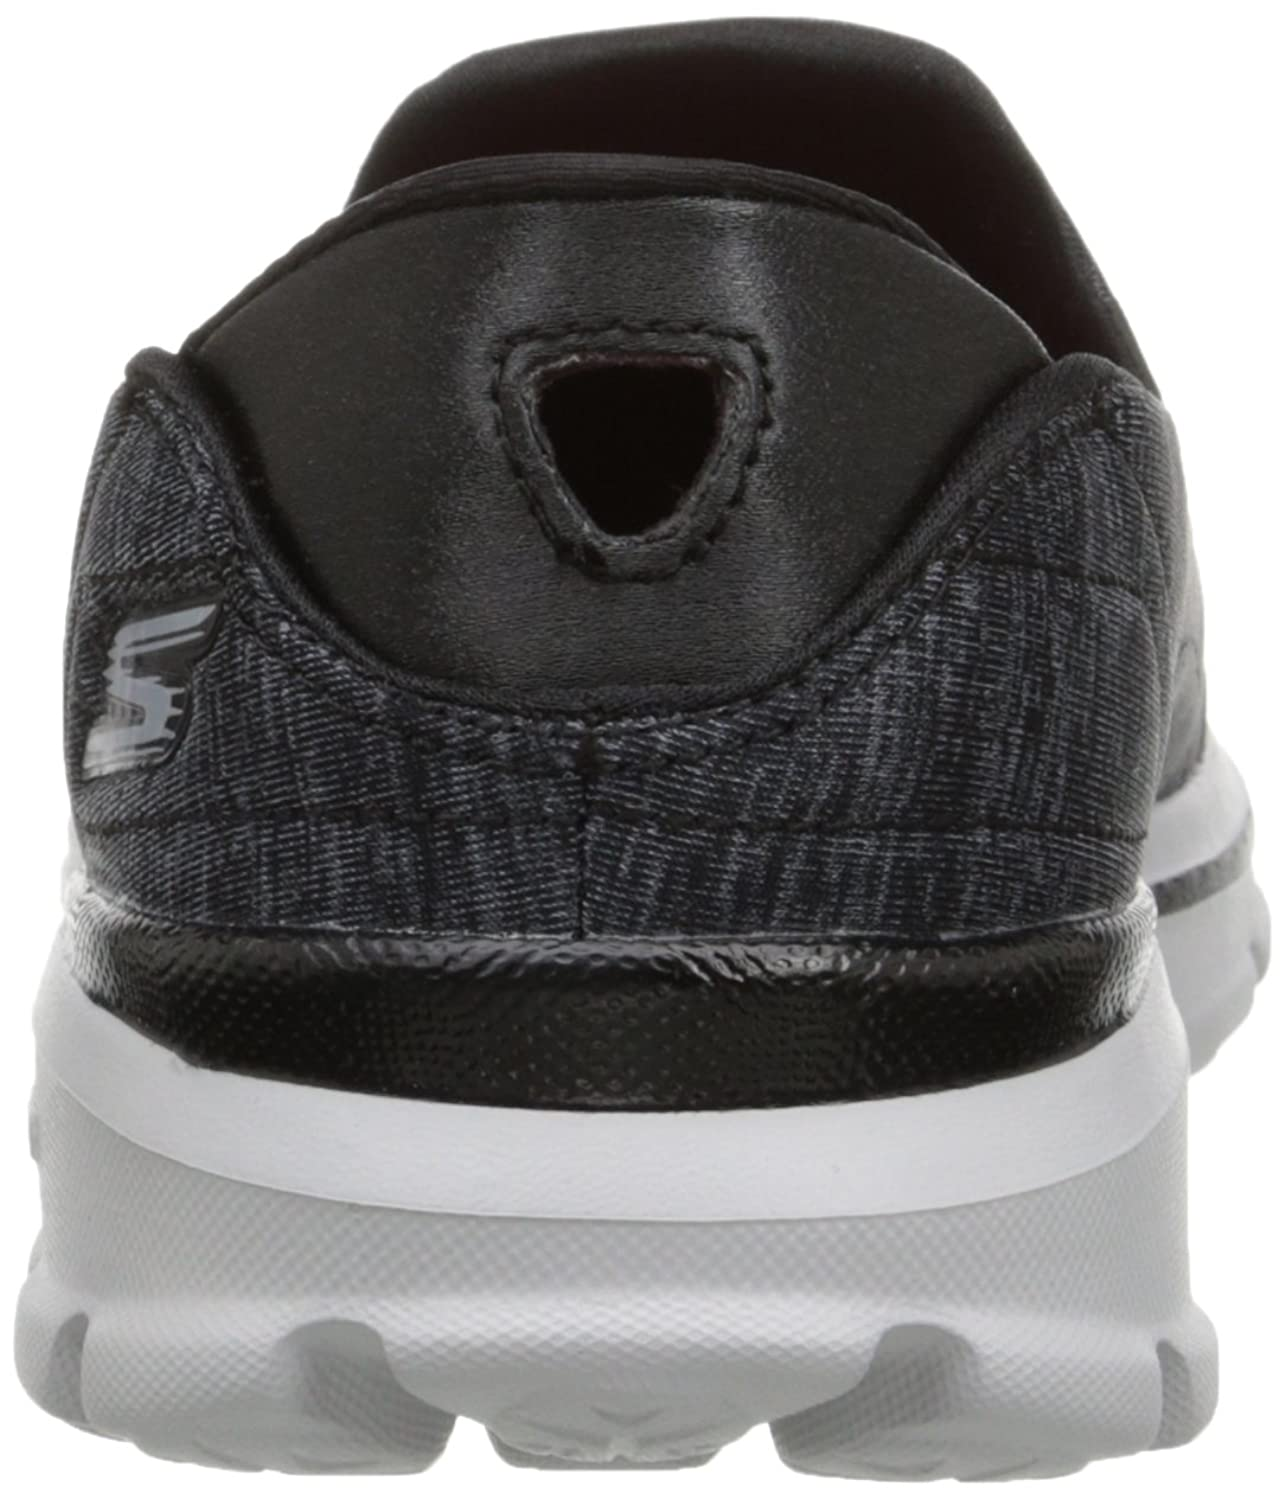 Skechers Gowalk 3 Force Kvinners Slip-on Walking Sko tvuAVFG